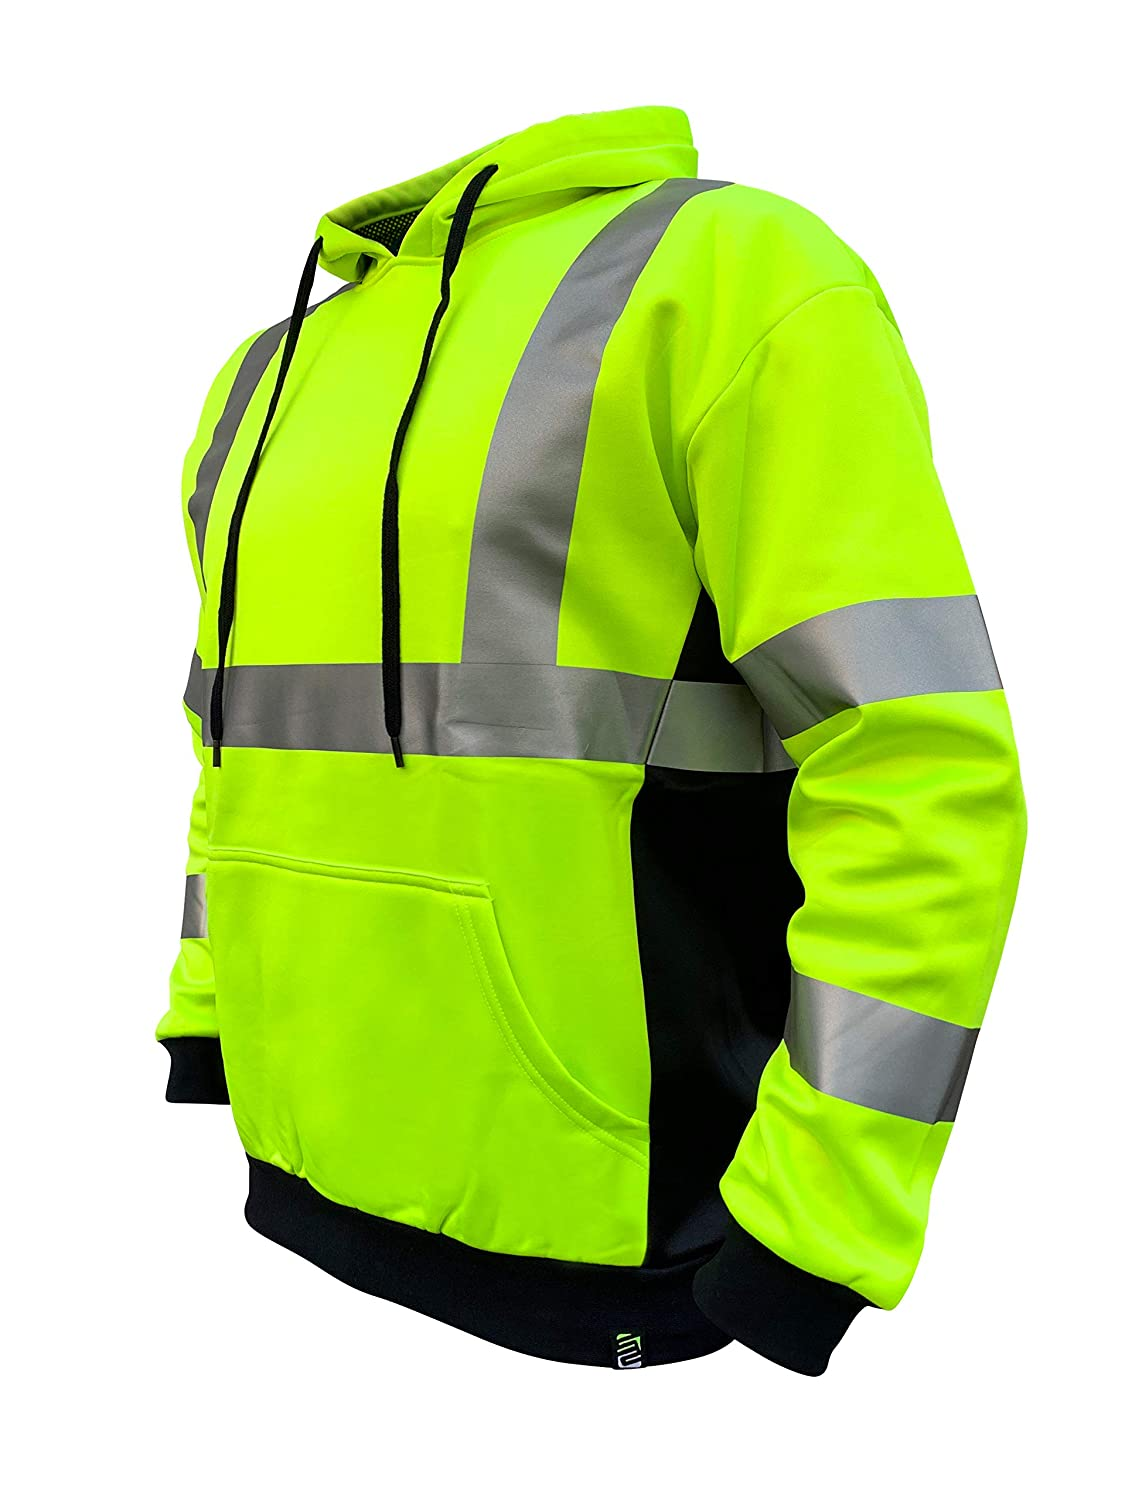 Safety Green SafetyShirtz SS360 ANSI Class 3 Safety Hoodie Yellow